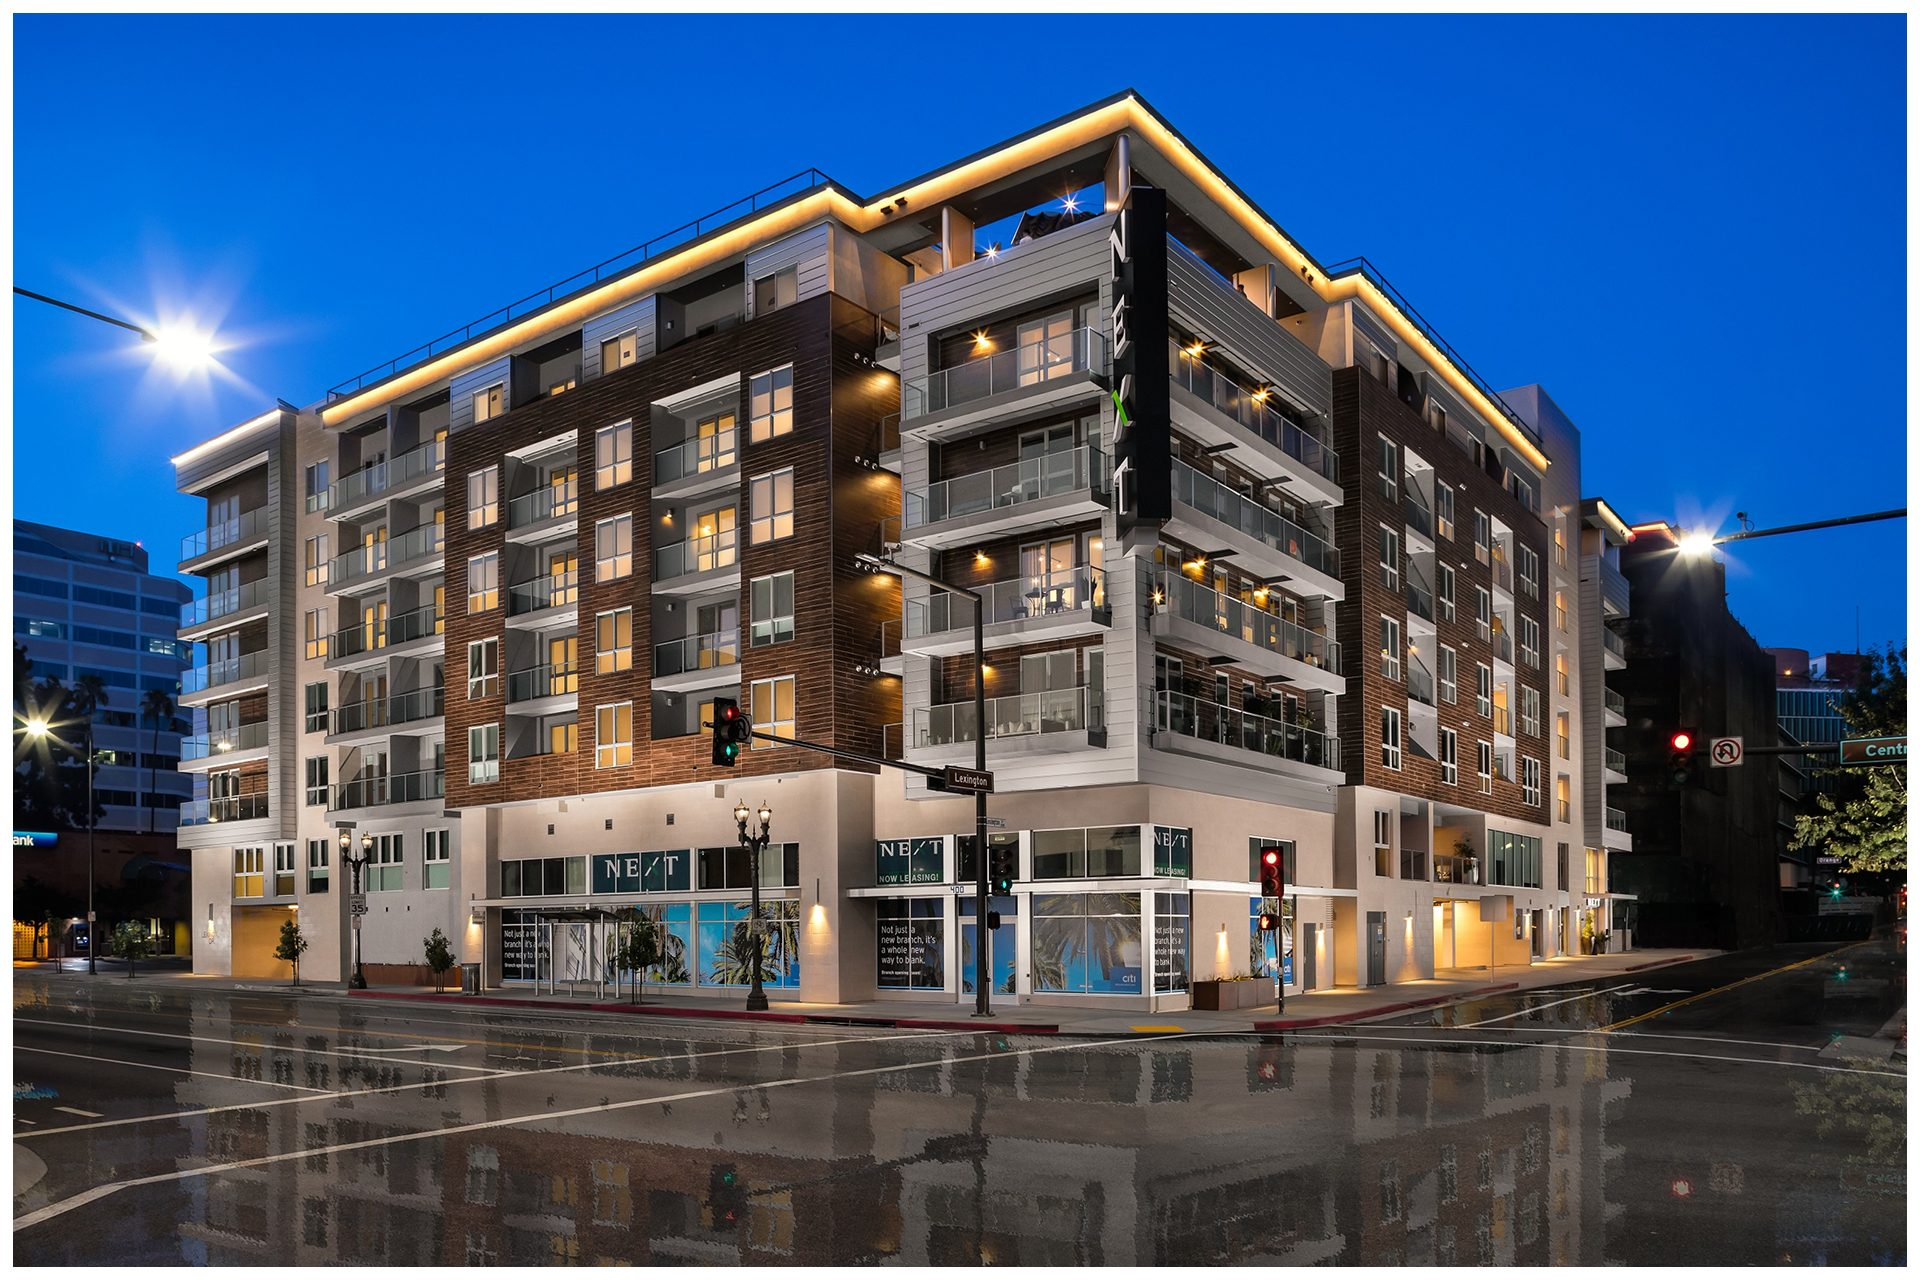 NEXT ON LEX - GLENDALE499 Residential Units & 8140 SF of retail space. Media Systems provided:Common Area WiFiCommon Area AV3x3 Video Wall DisplayApartment Audio System in all Penthouse units